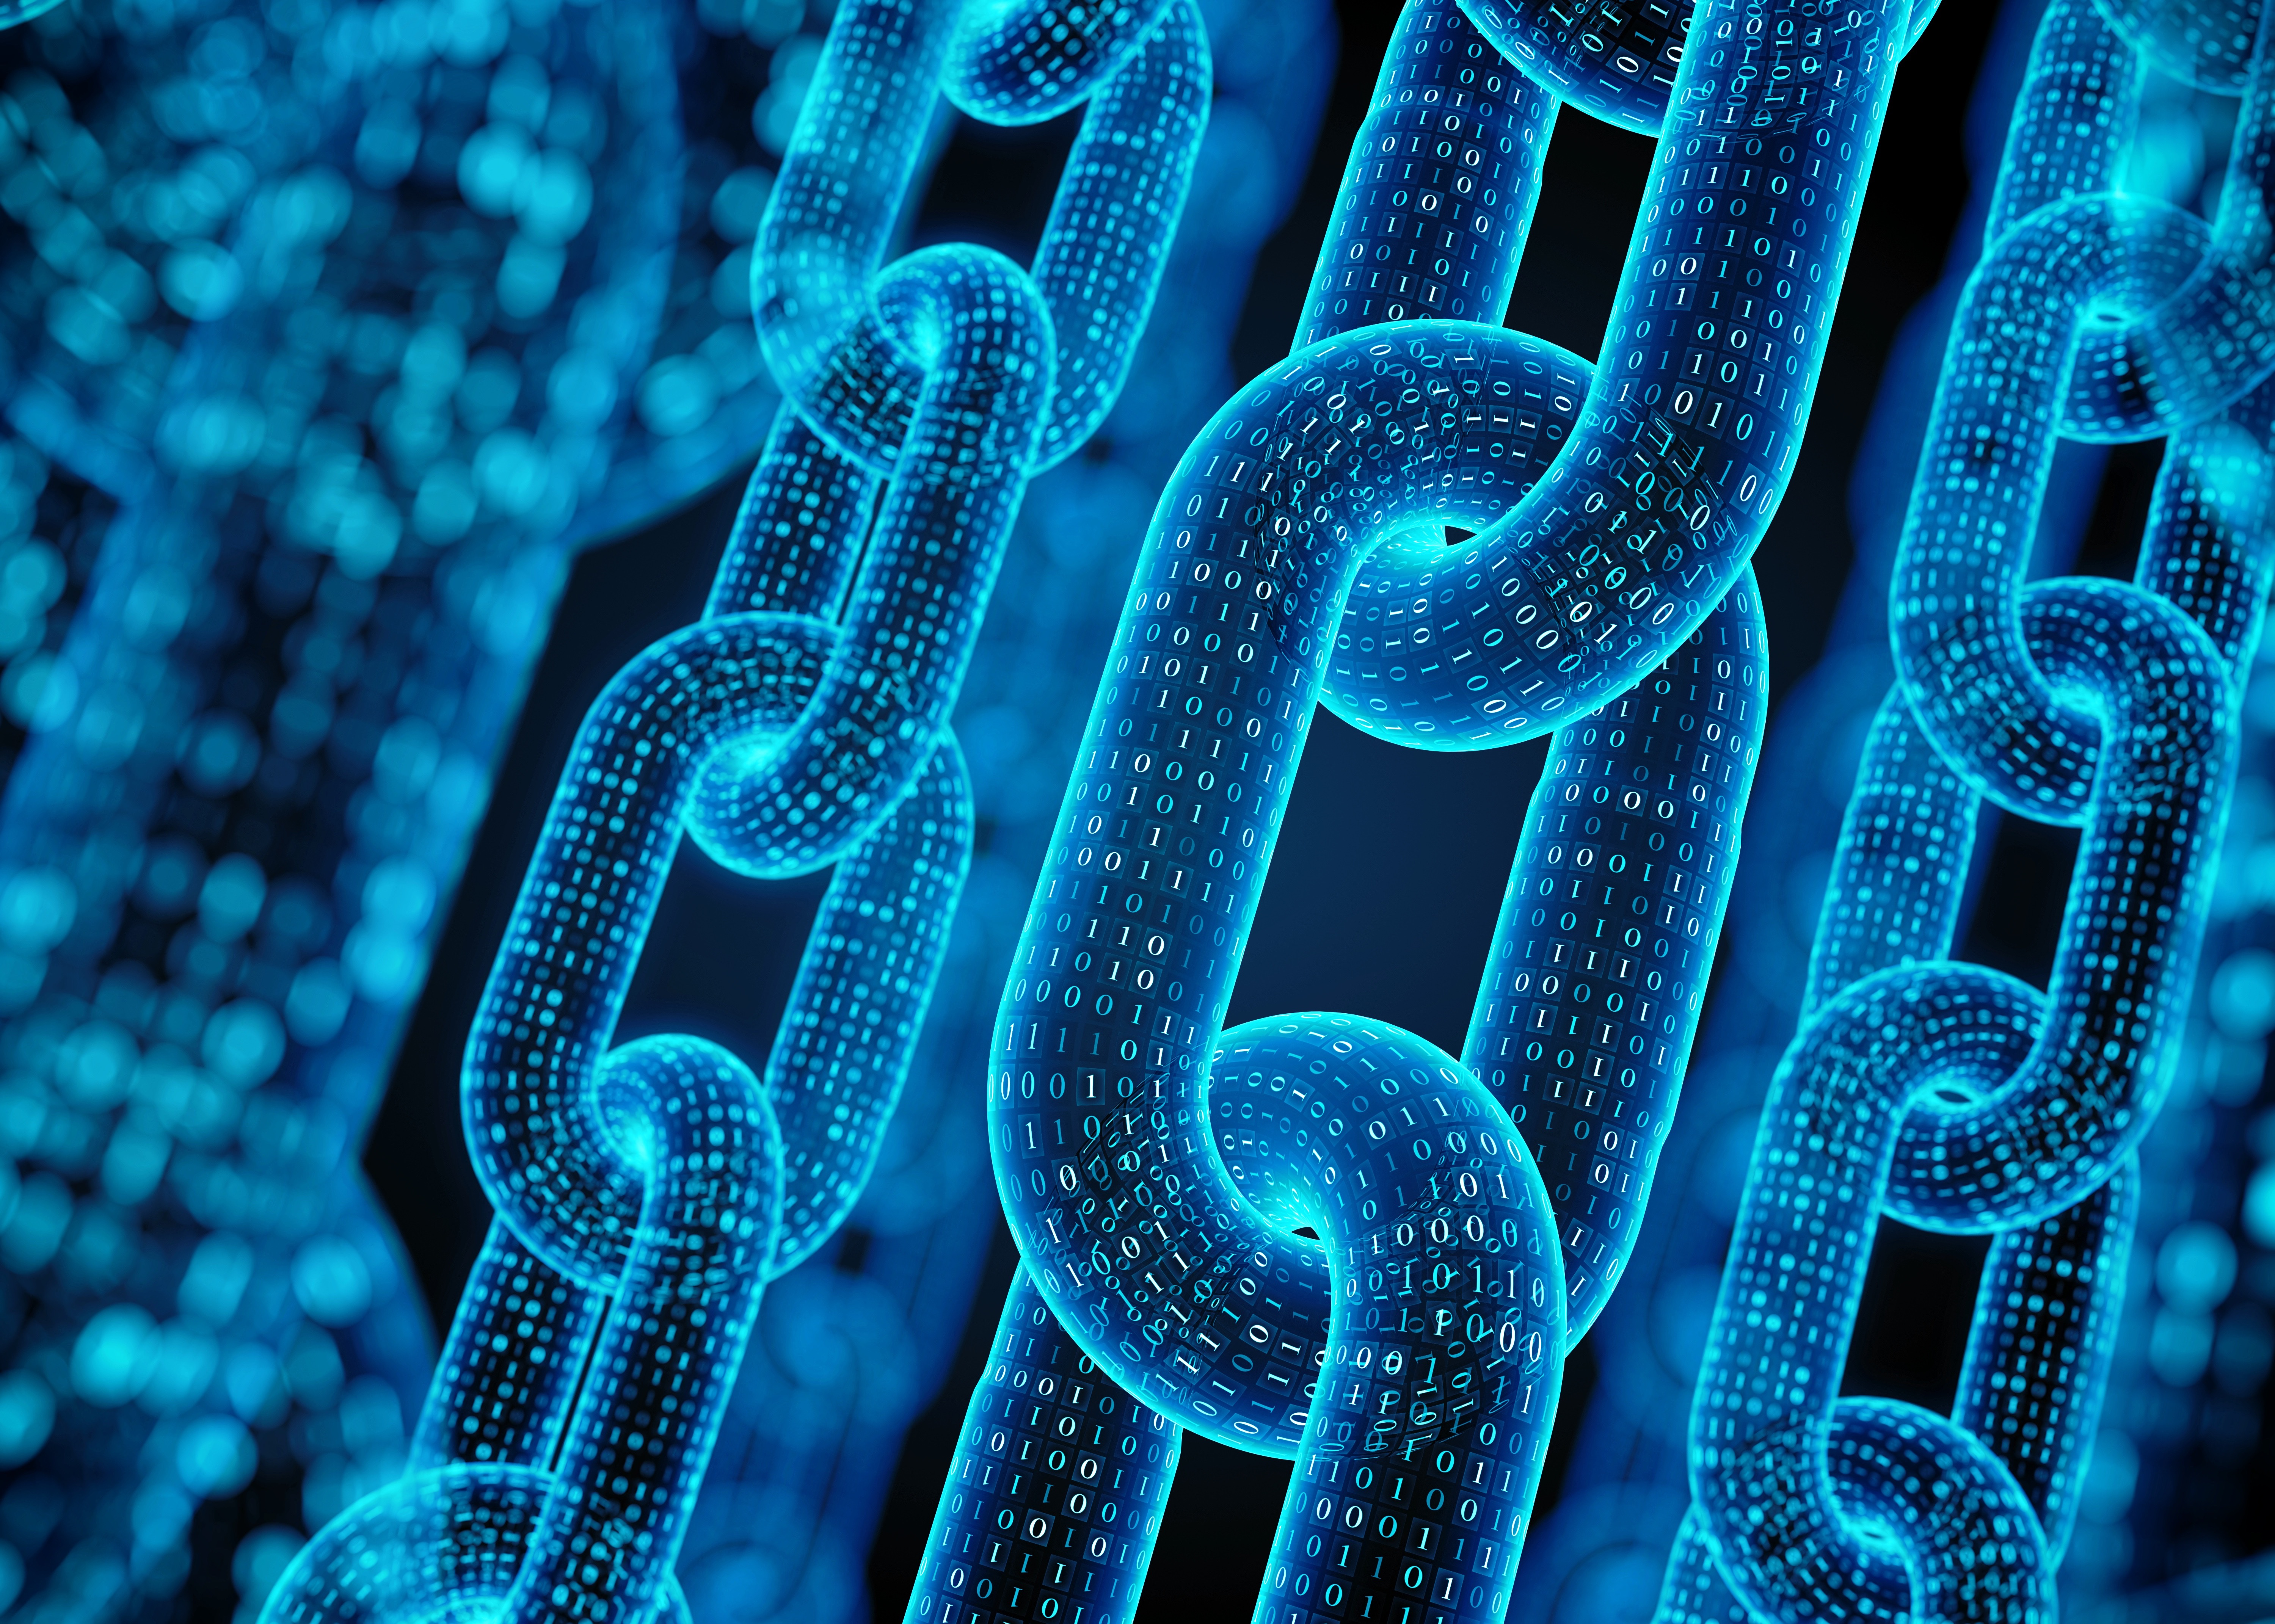 104493 download wallpaper Art, Chain, Matrix, Numbers, Number, Neon screensavers and pictures for free